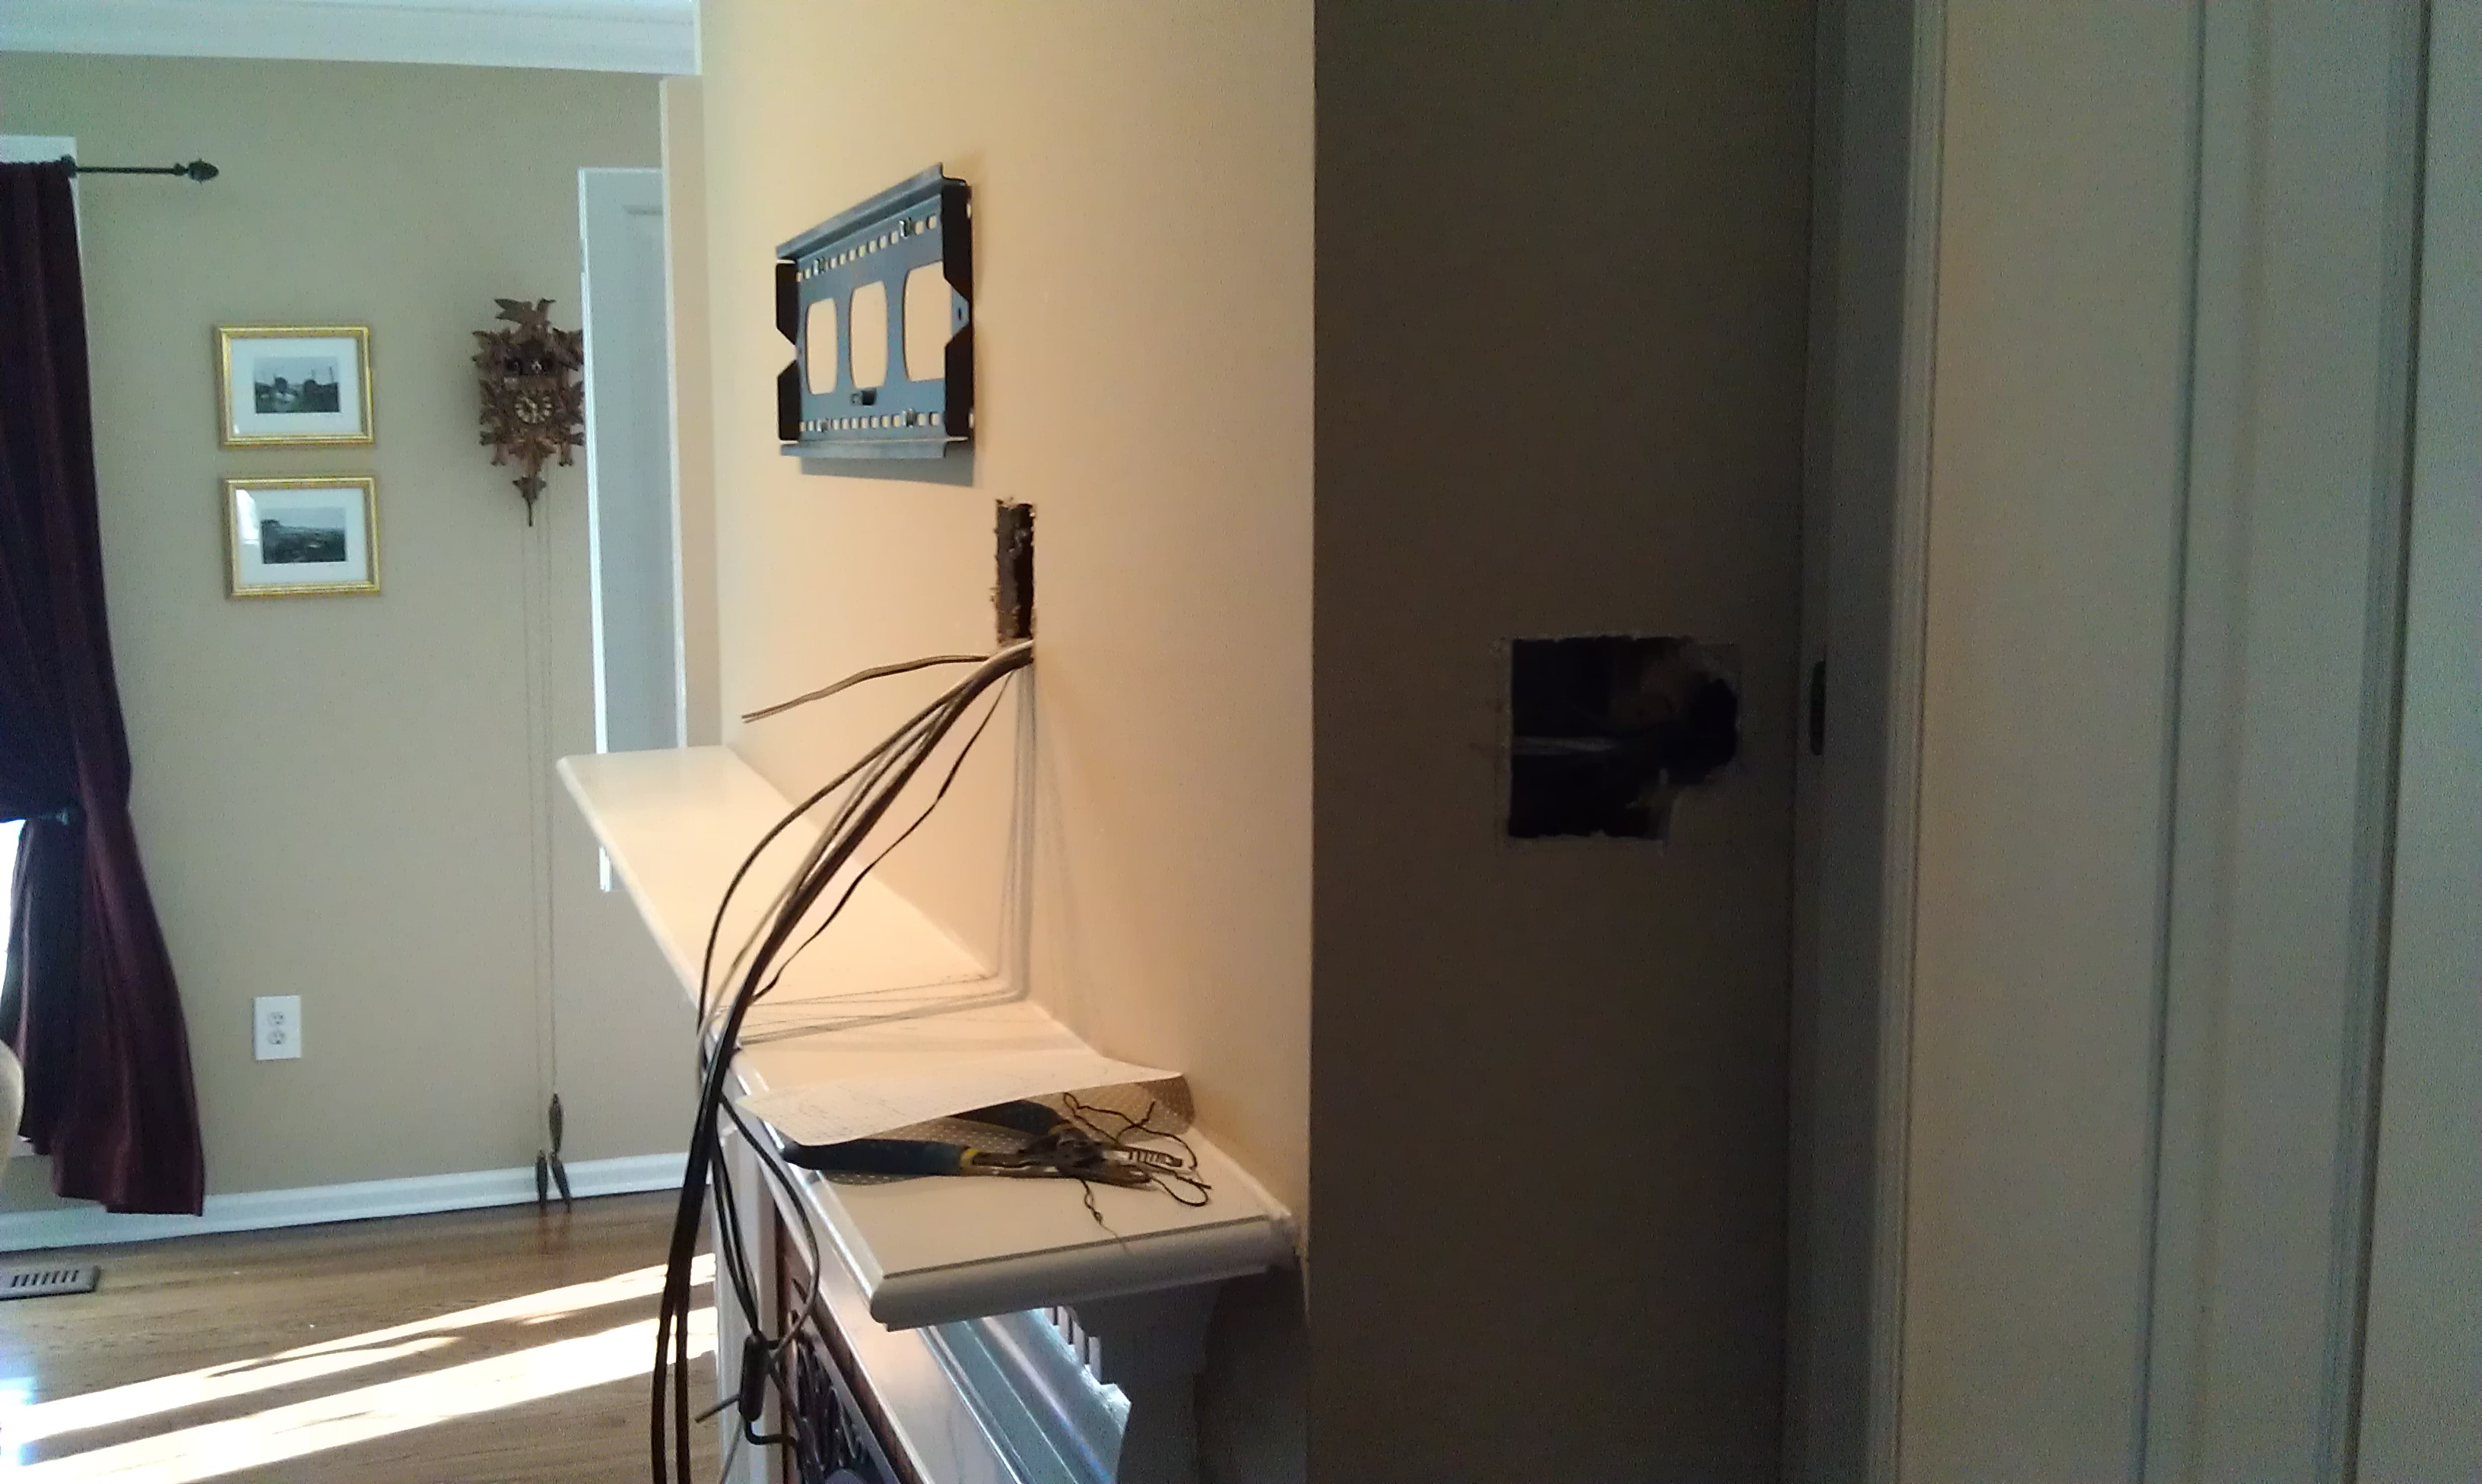 Wall Mount Tv Above Fireplace Hide Wires Install Over With